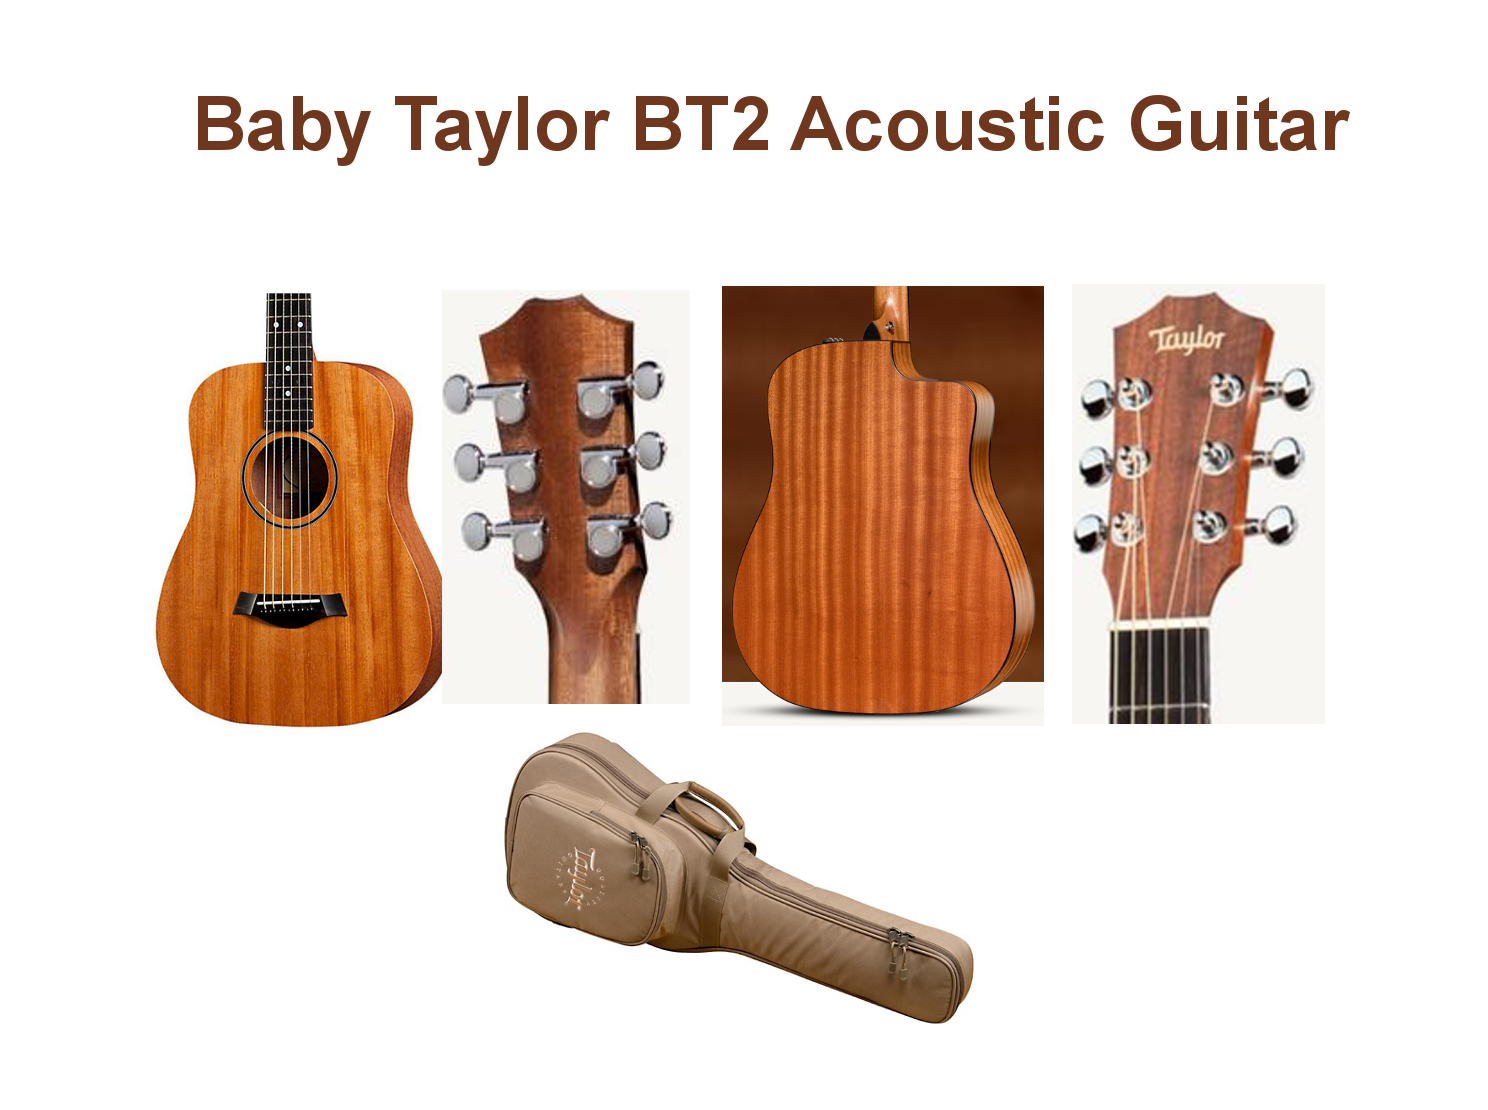 Baby Taylor BT2 Acoustic Guitar